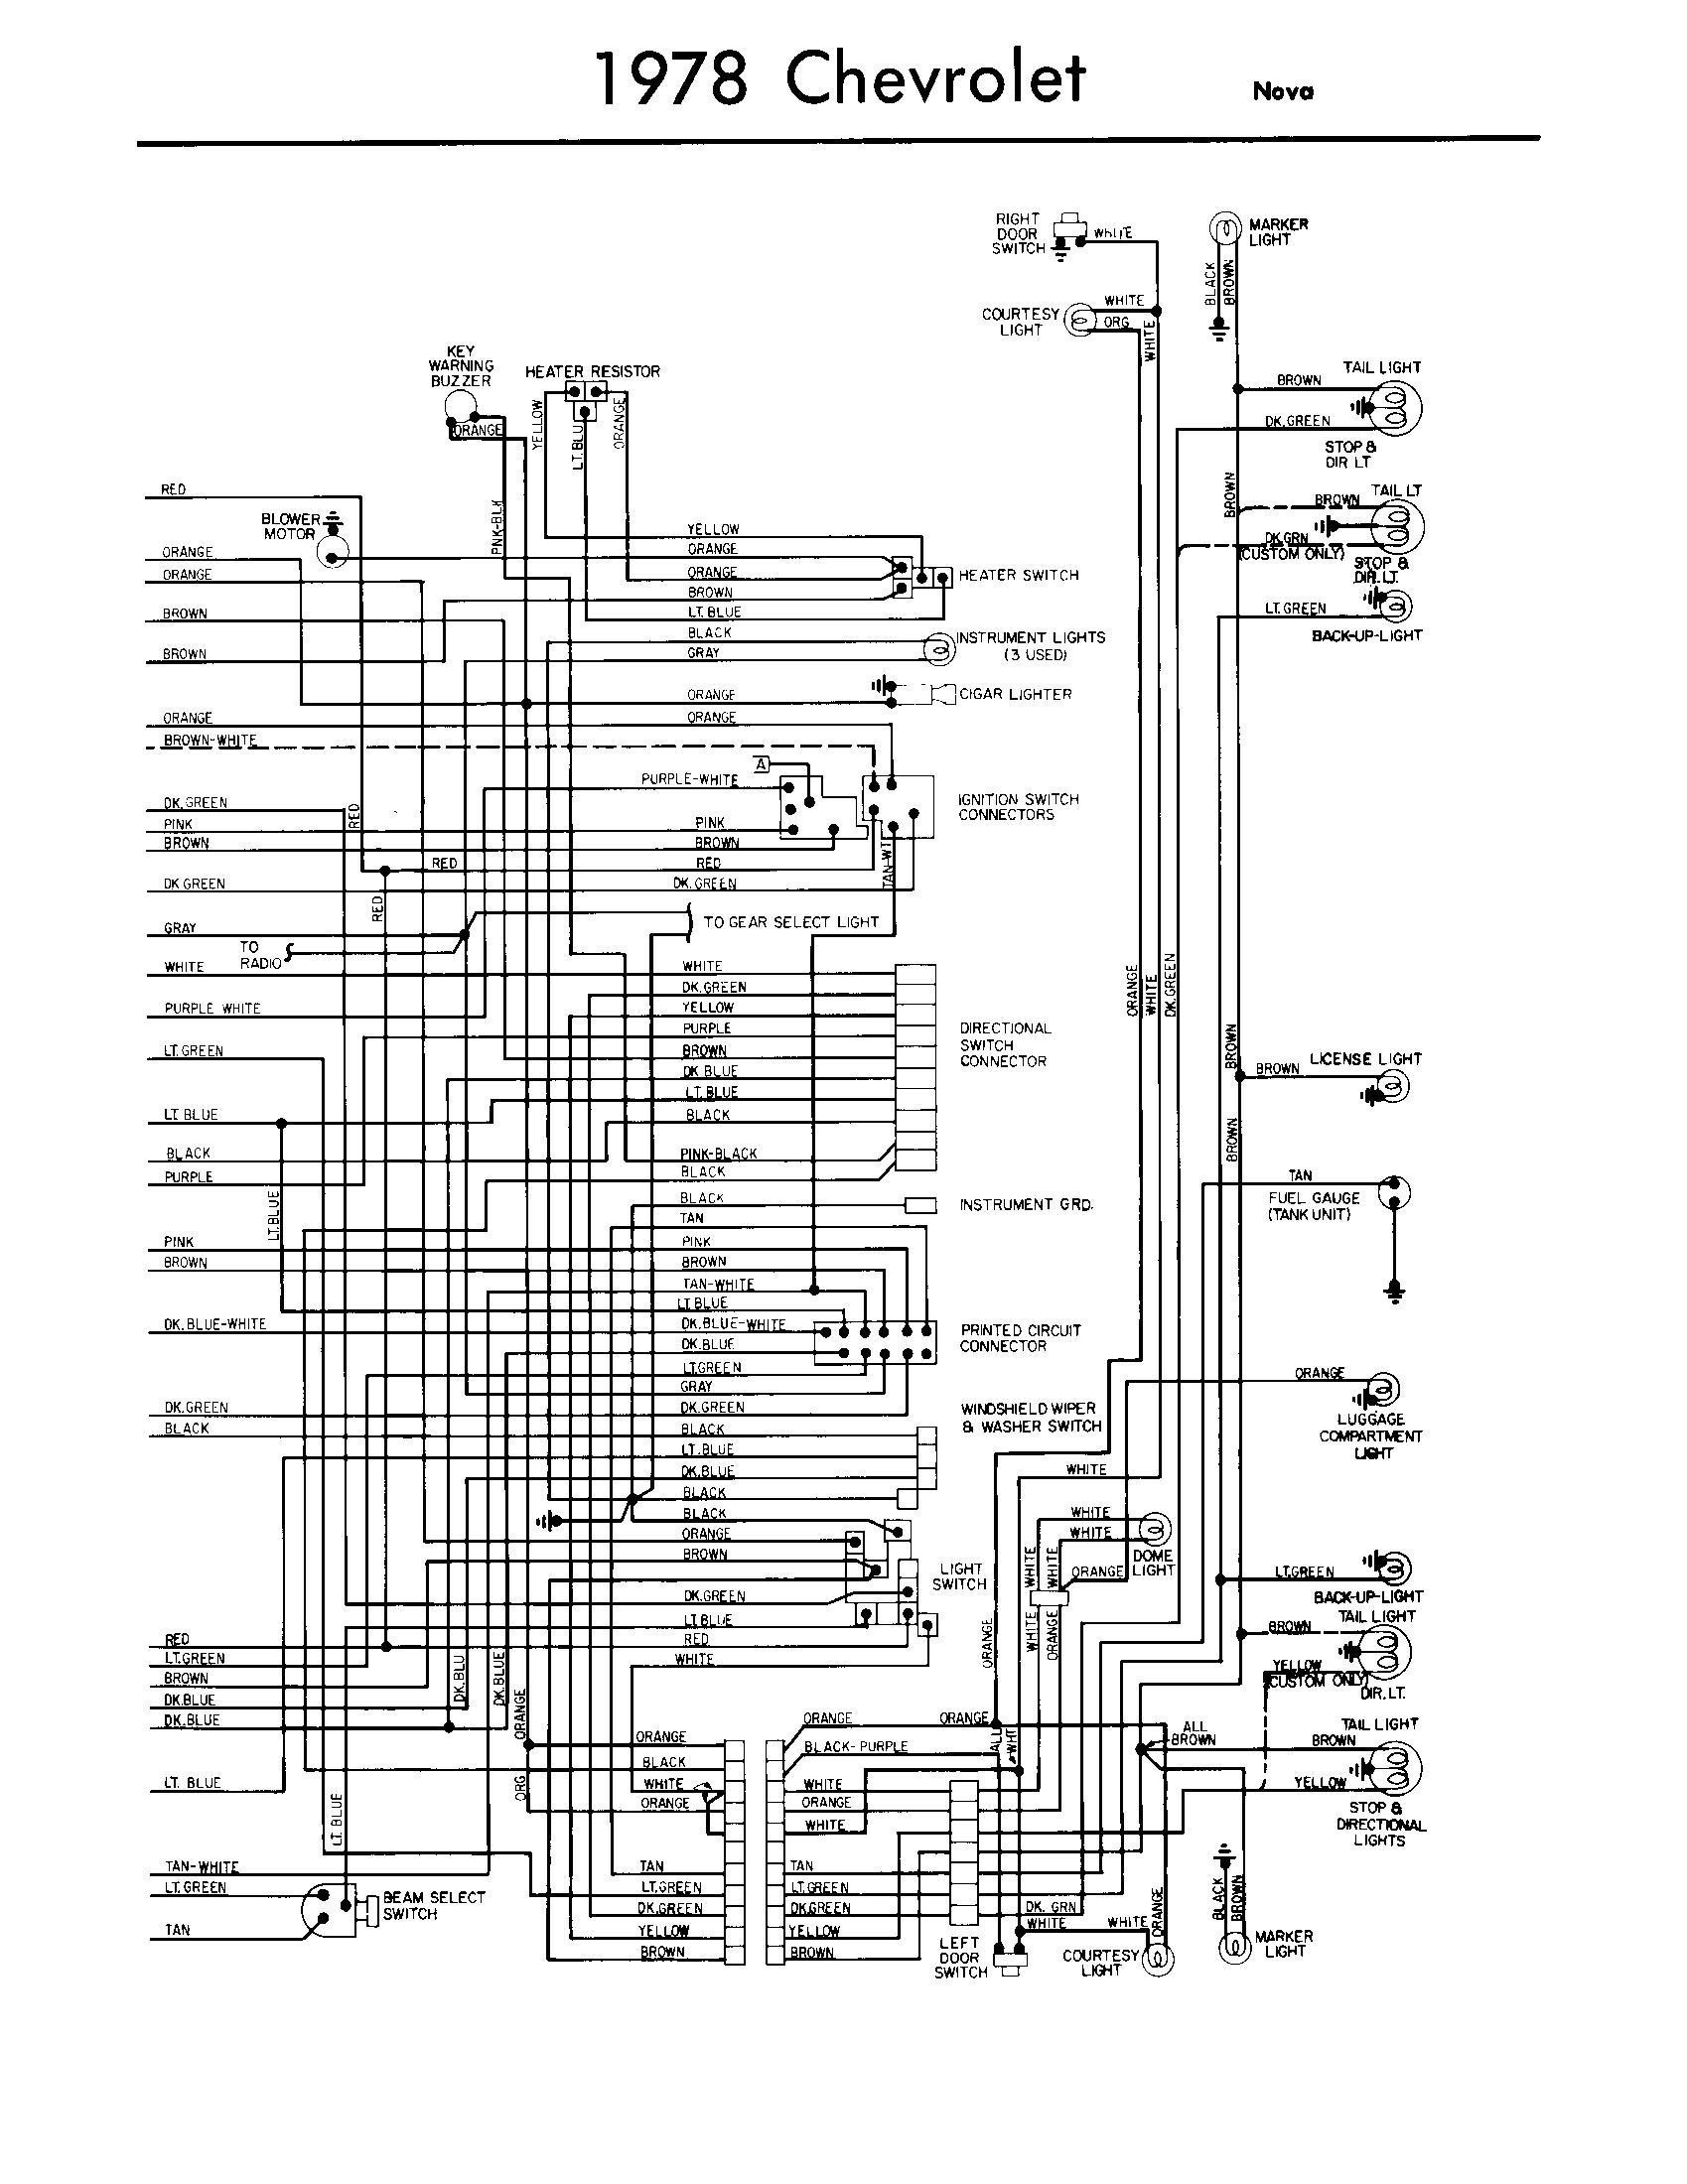 hight resolution of 1977 chevy pickup wiring diagram completed wiring diagrams gm headlight wiring diagram 1986 c10 ac wiring diagram